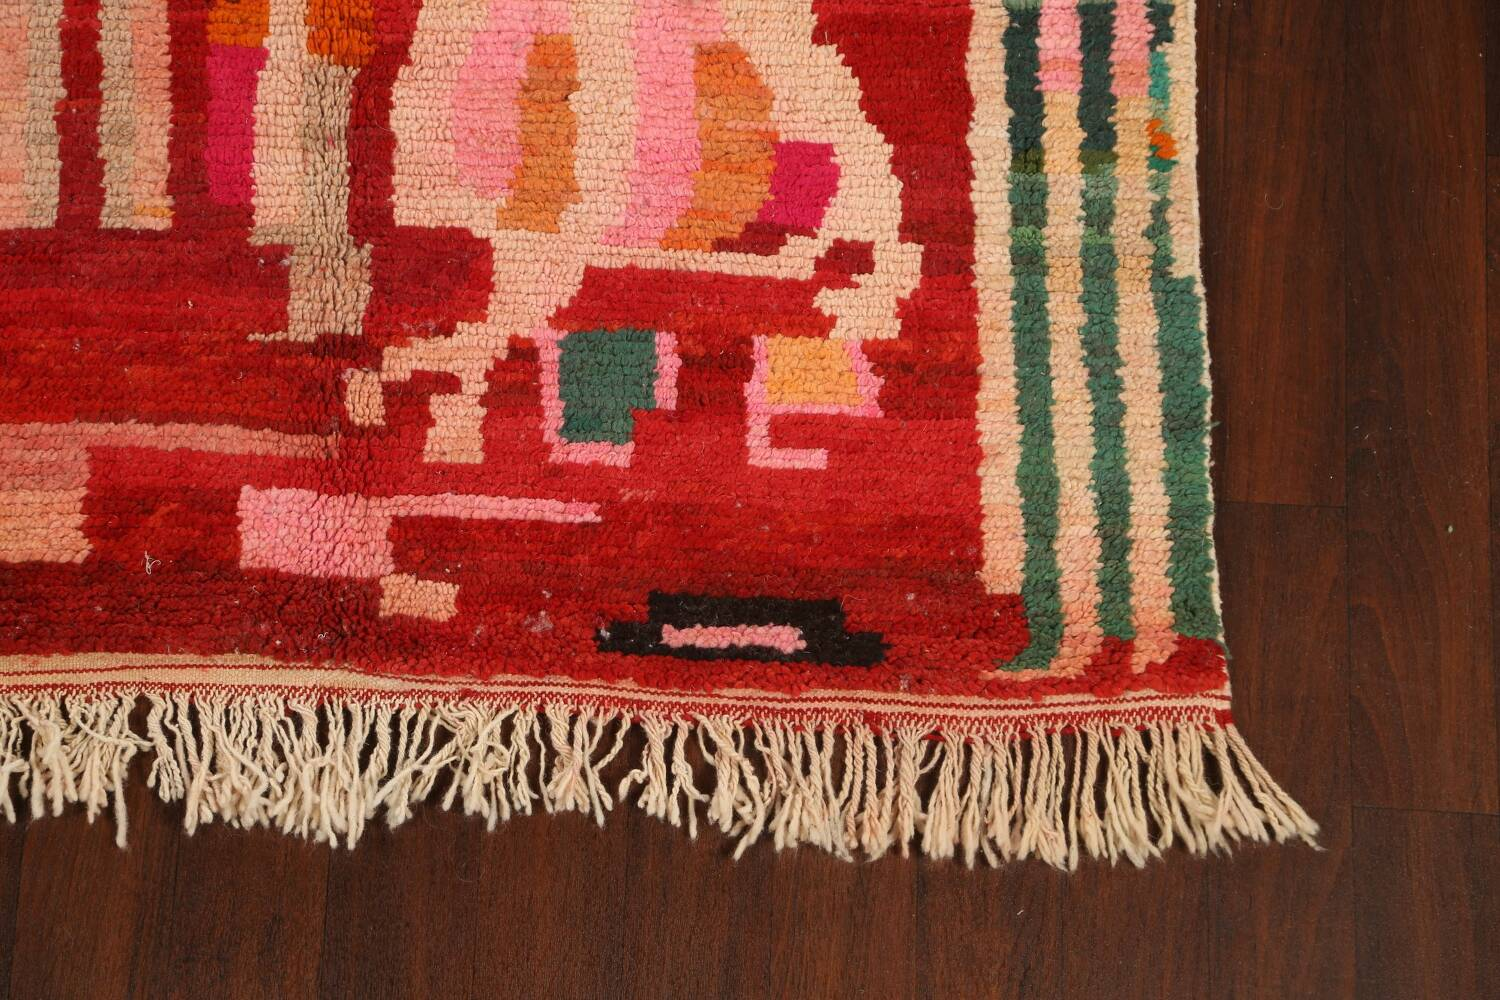 Abstract Modern Moroccan Oriental Area Rug 5x8 image 5